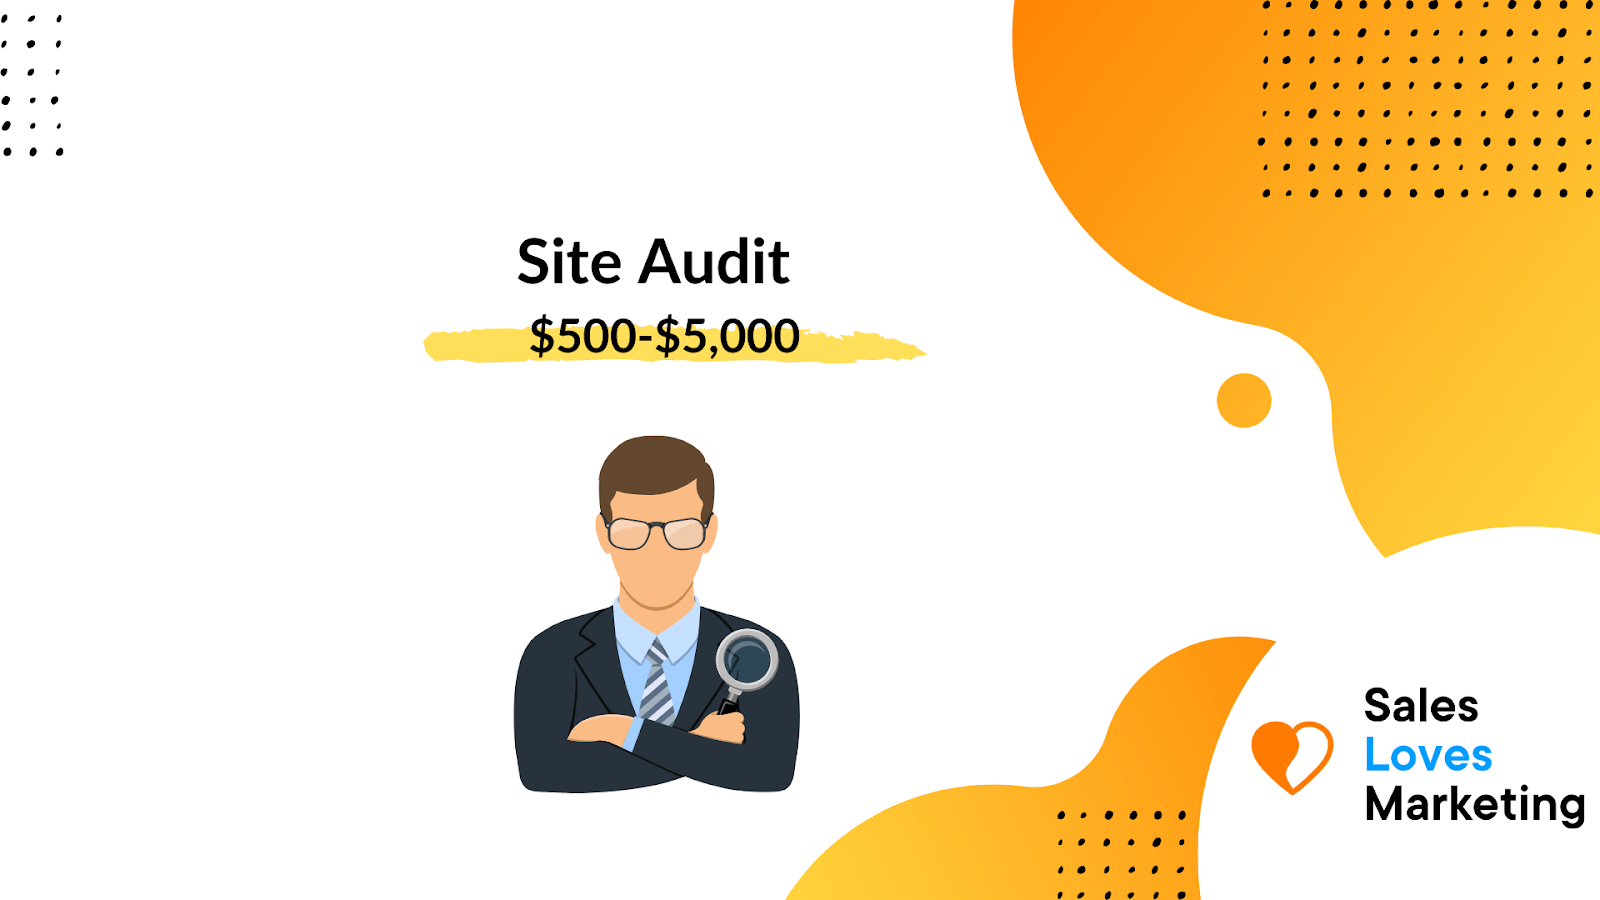 Site Audit costs, on average